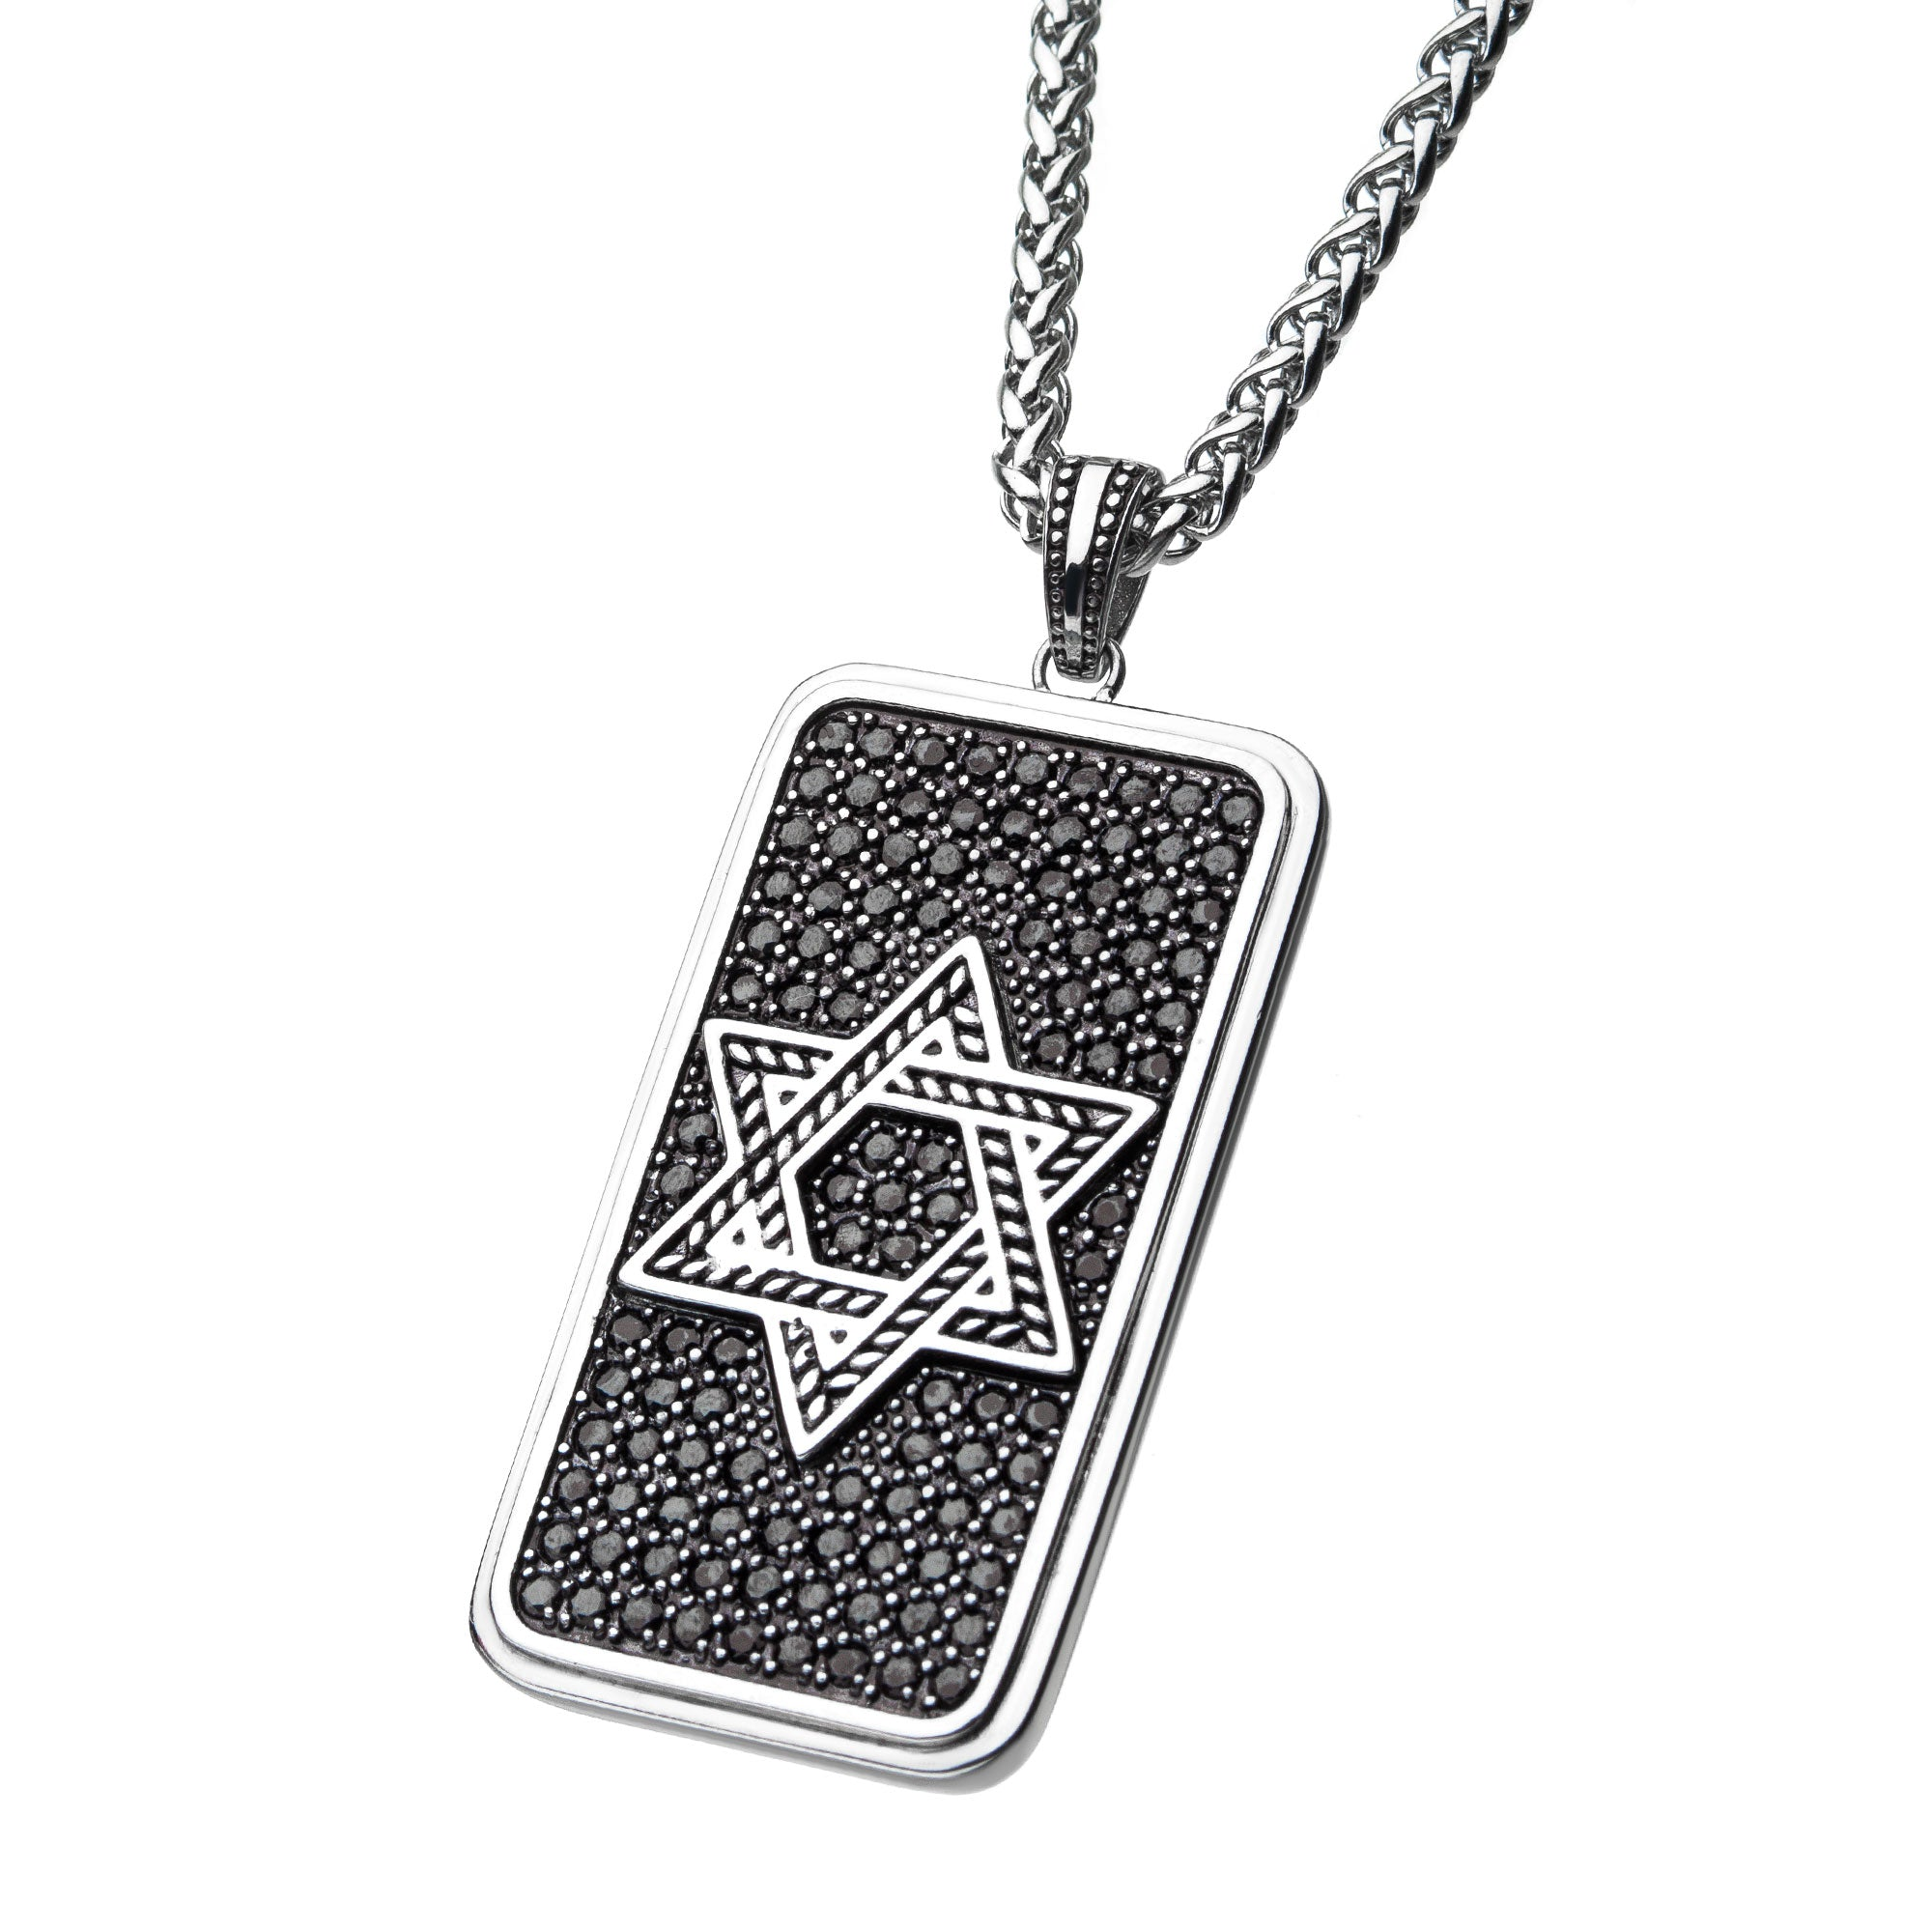 Stainless Steel with Black CZ Dog Tag Pendant with Wheat Chain